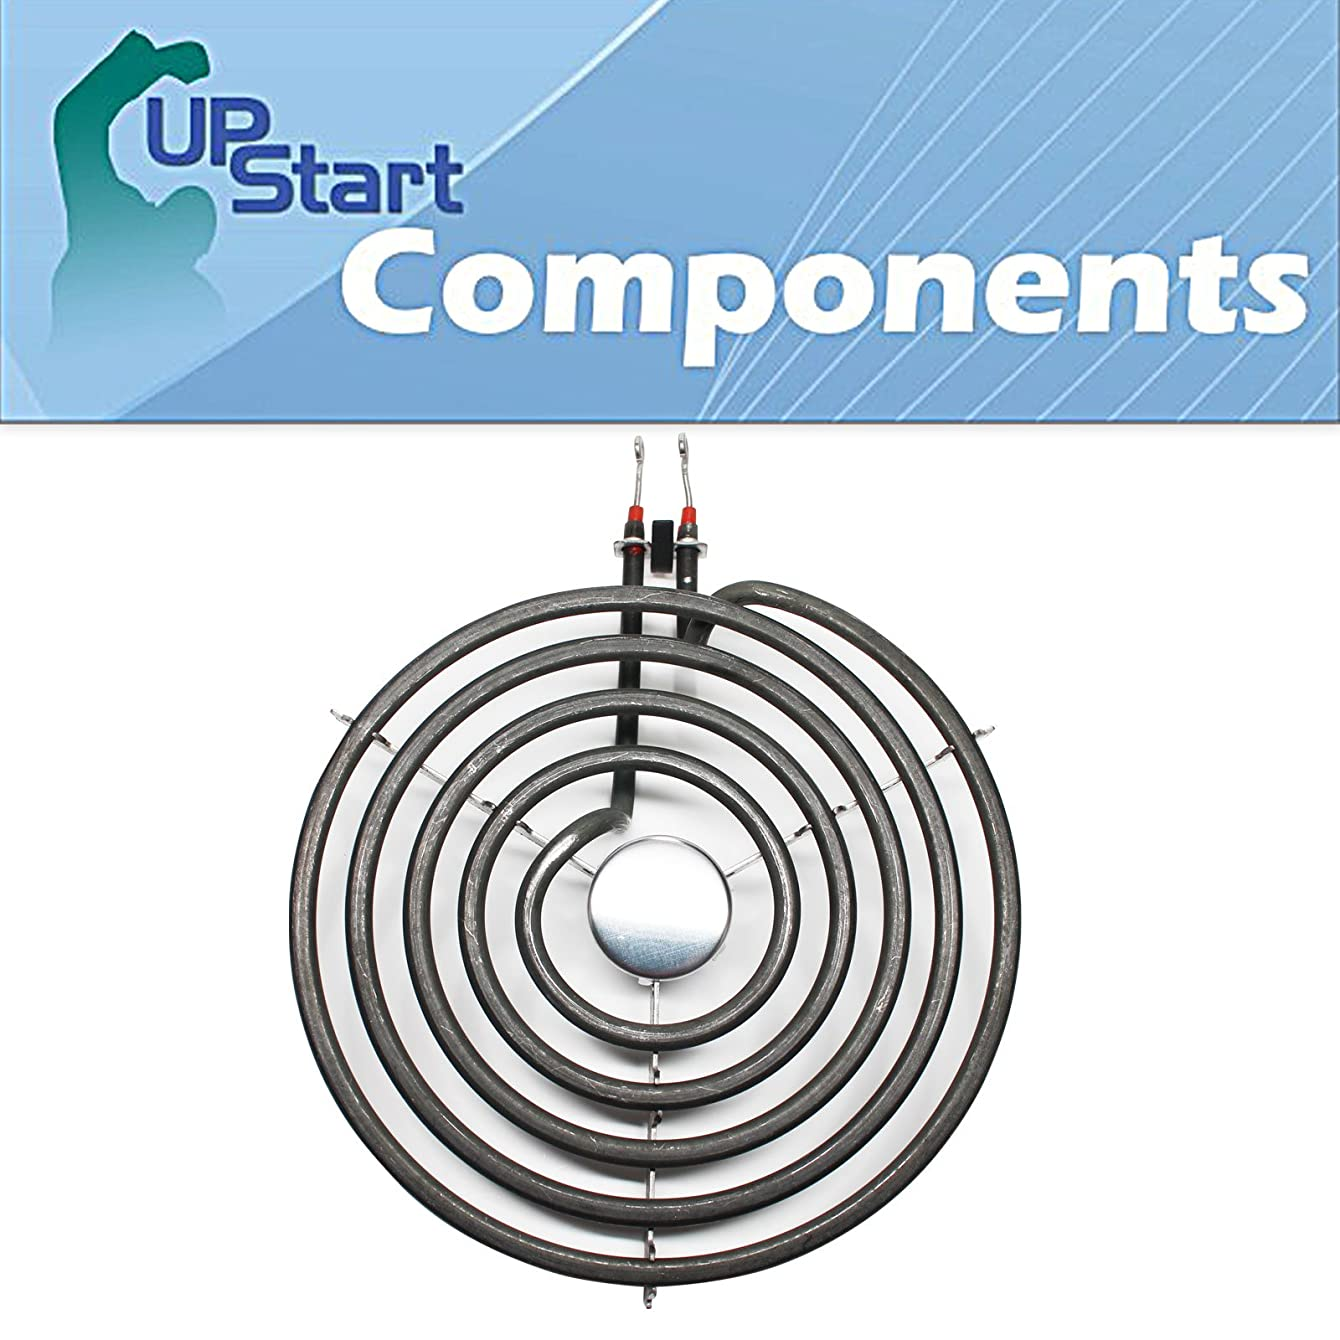 Replacement Whirlpool RS675PXGT10 8 inch 5 Turns Surface Burner Element - Compatible Whirlpool 9761345 Heating Element for Range, Stove & Cooktop